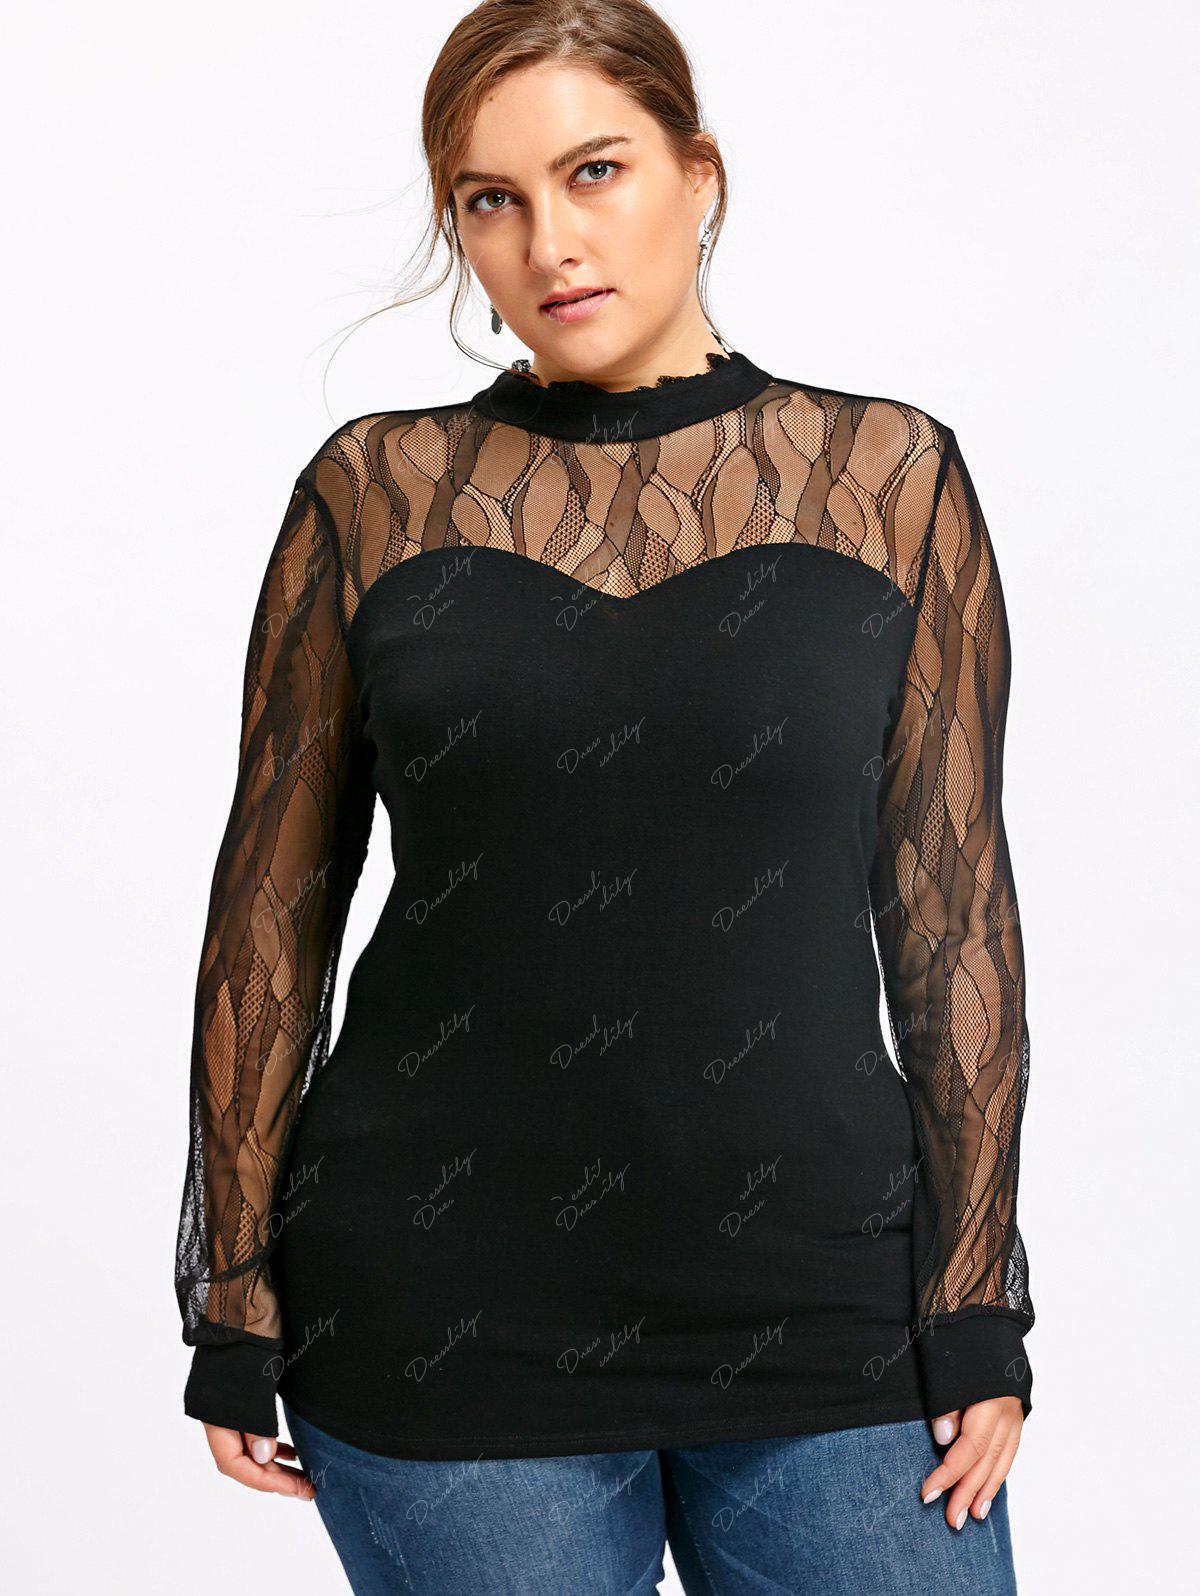 Plus Size See Thru Mock Neck Top - BLACK 5XL